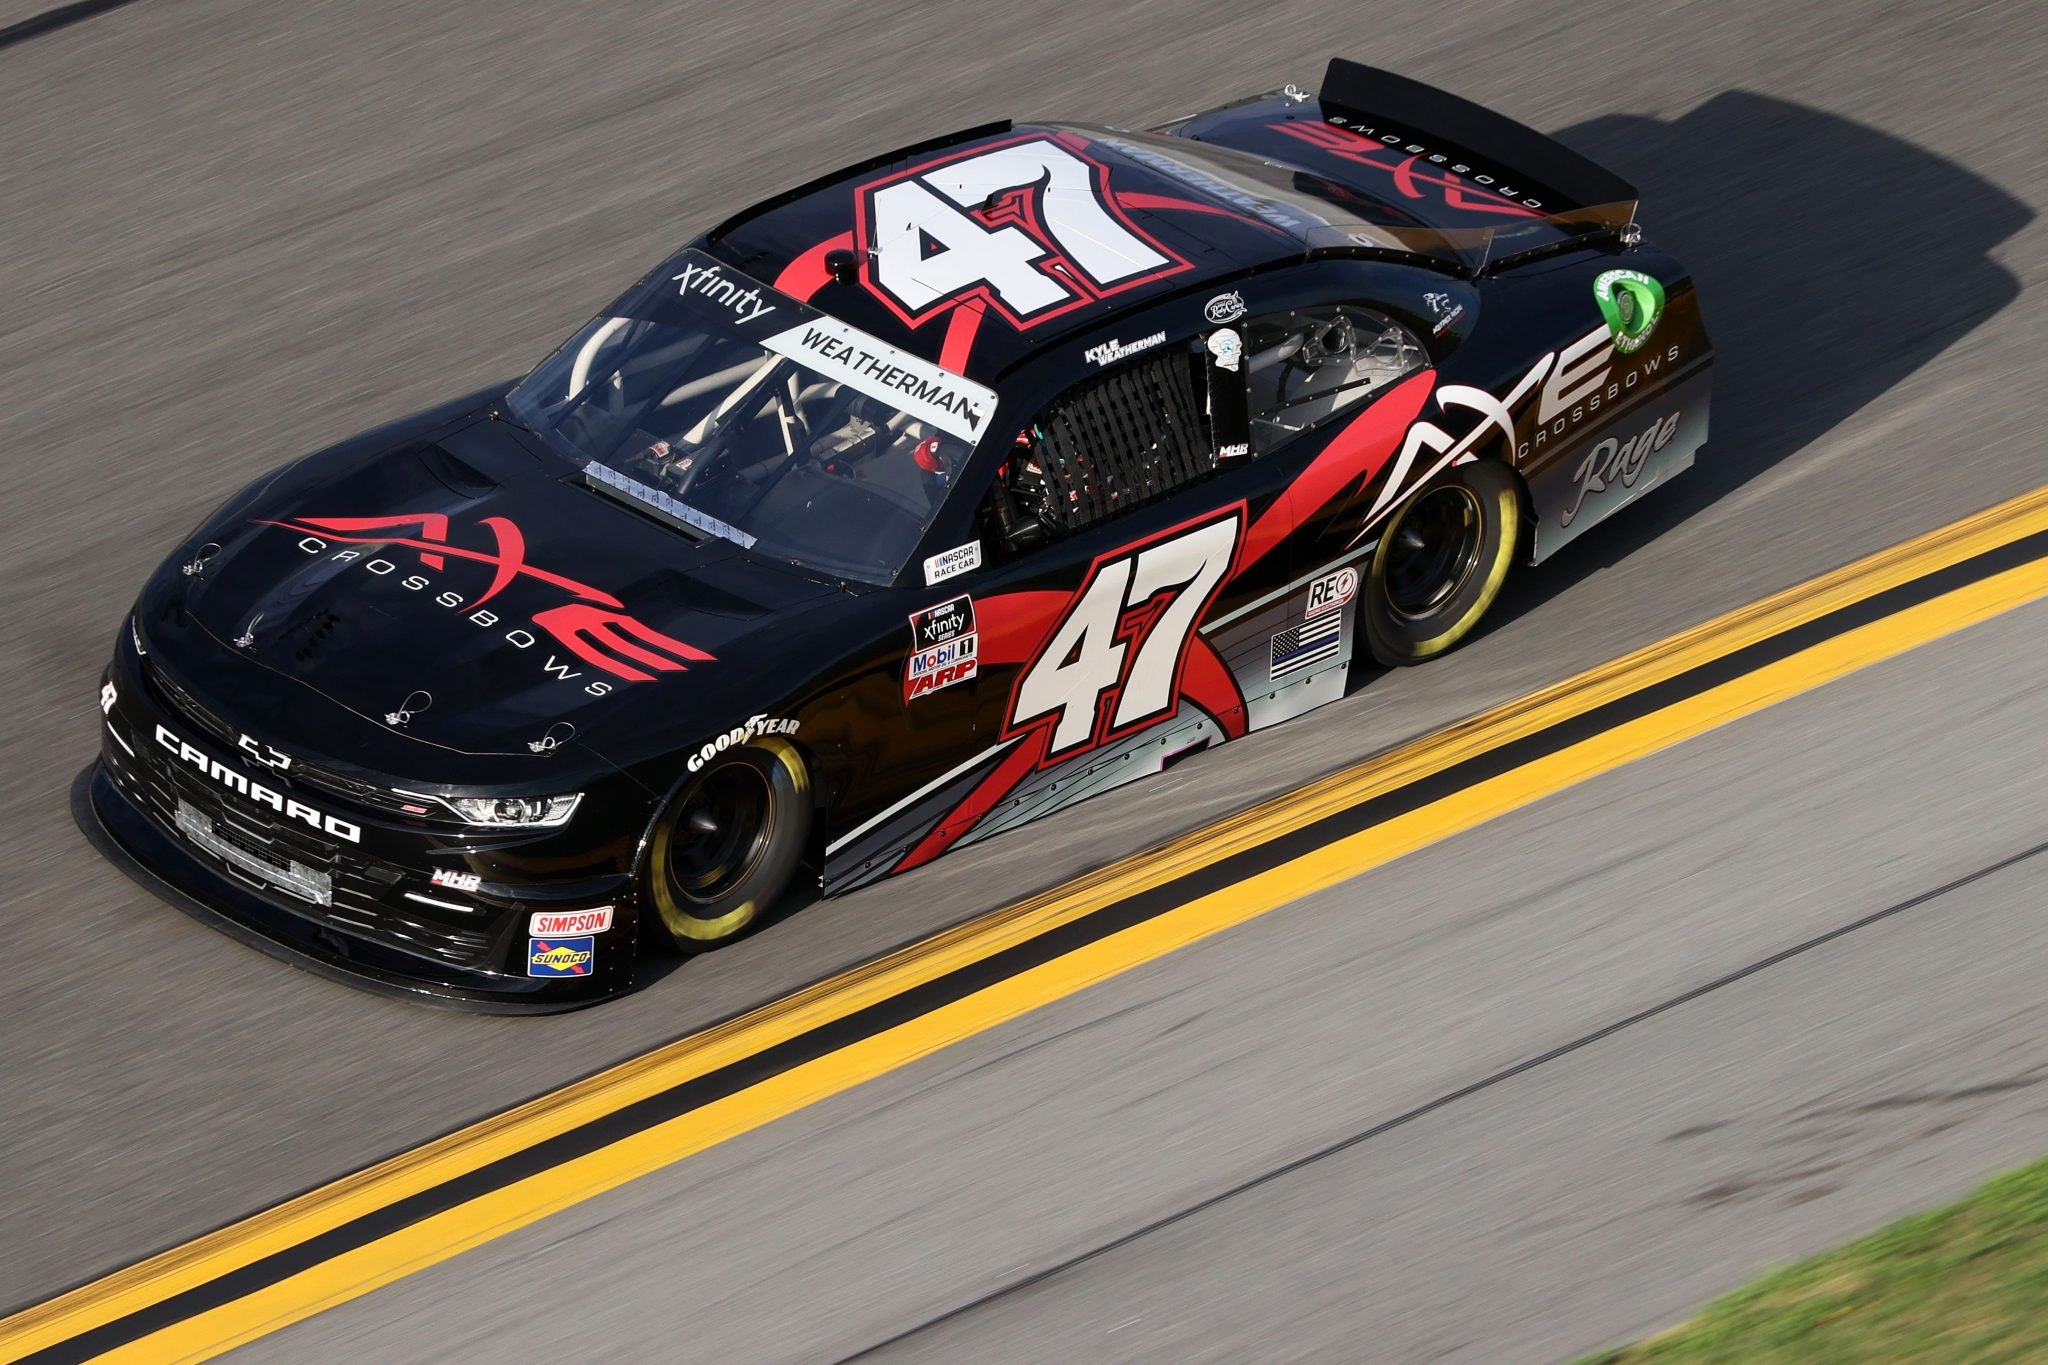 DAYTONA BEACH, FLORIDA - FEBRUARY 12: Kyle Weatherman, driver of the #47 Axe Crossbows Chevrolet, practices for the NASCAR Xfinity Series Beef. It's What's For Dinner. 300 at Daytona International Speedway on February 12, 2021 in Daytona Beach, Florida. (Photo by James Gilbert/Getty Images) | Getty Images